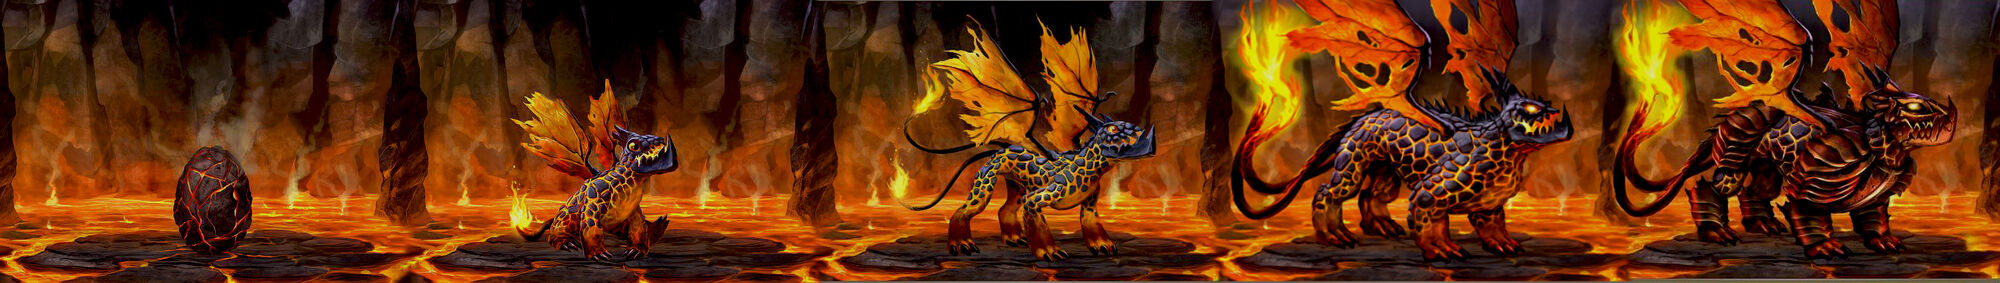 dragons of atlantis fire dragon